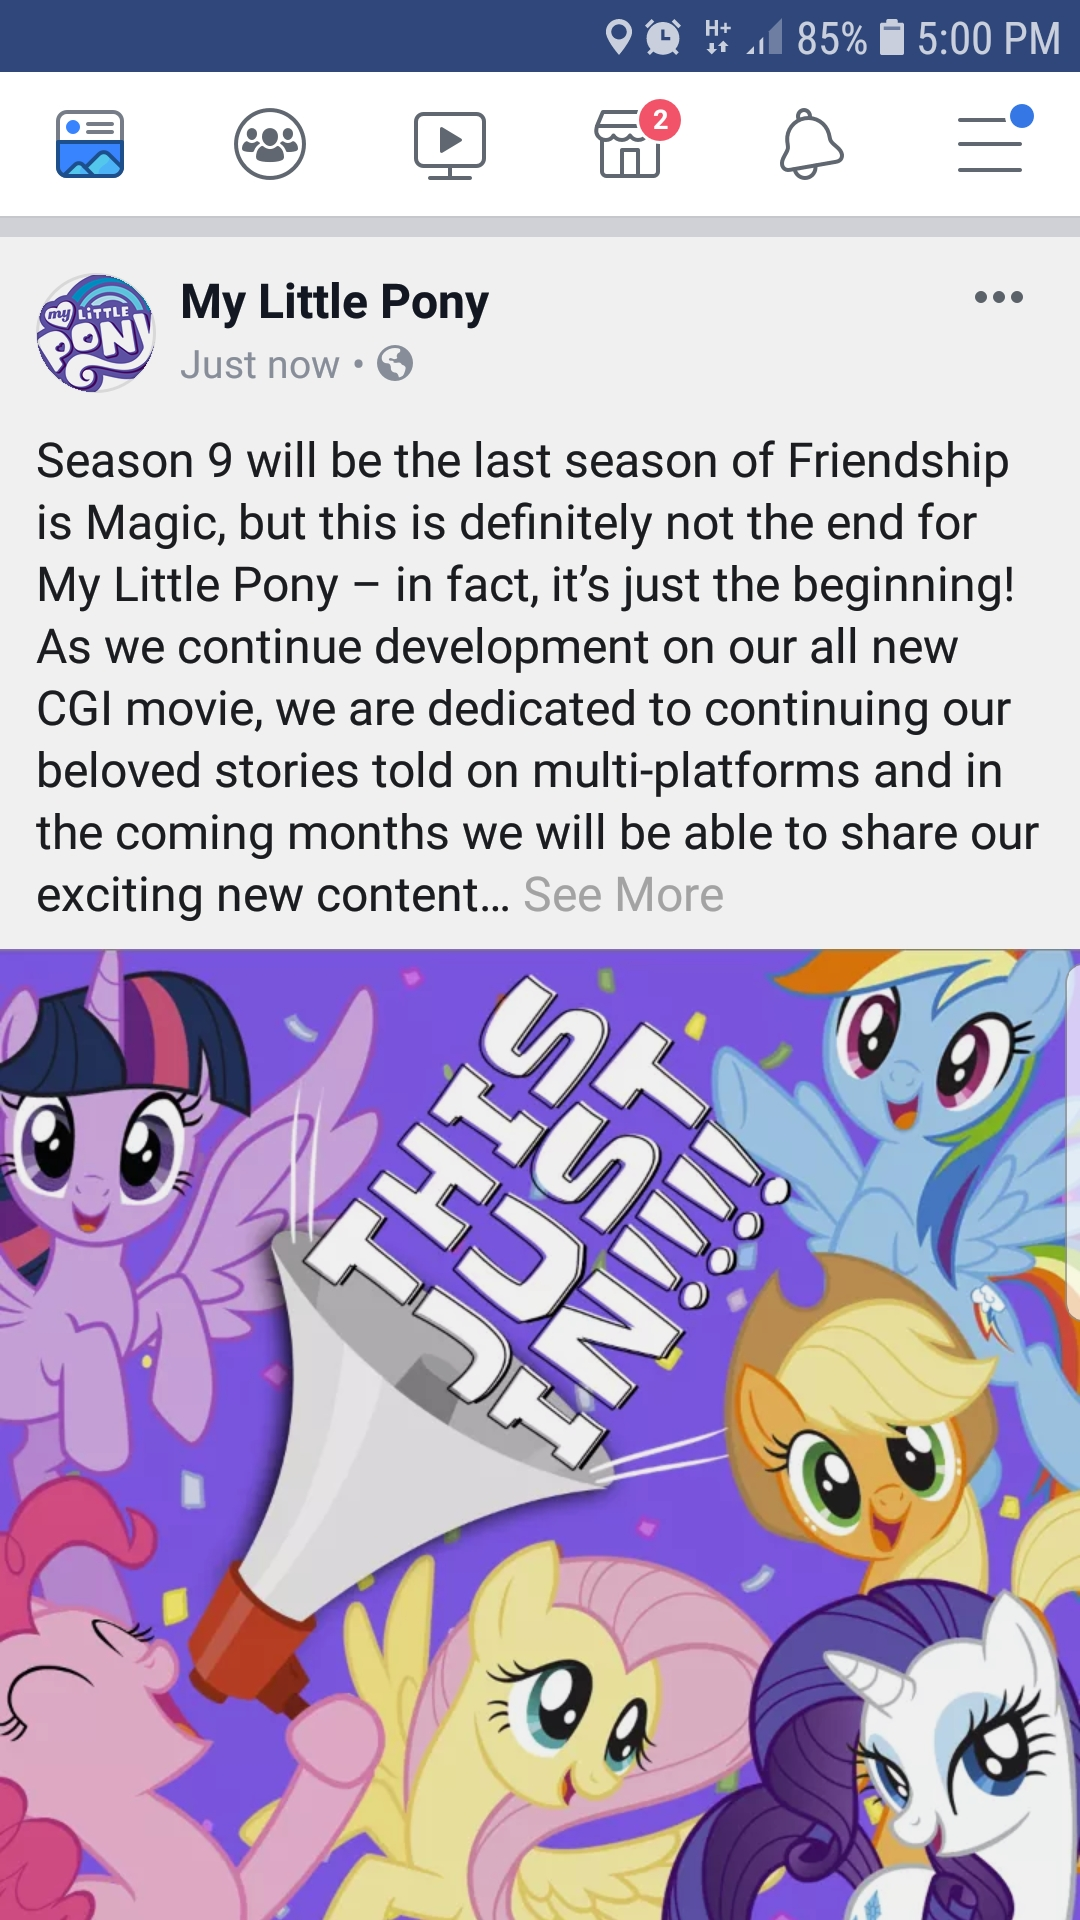 It's over | My Little Pony: Friendship is Magic | Know Your Meme